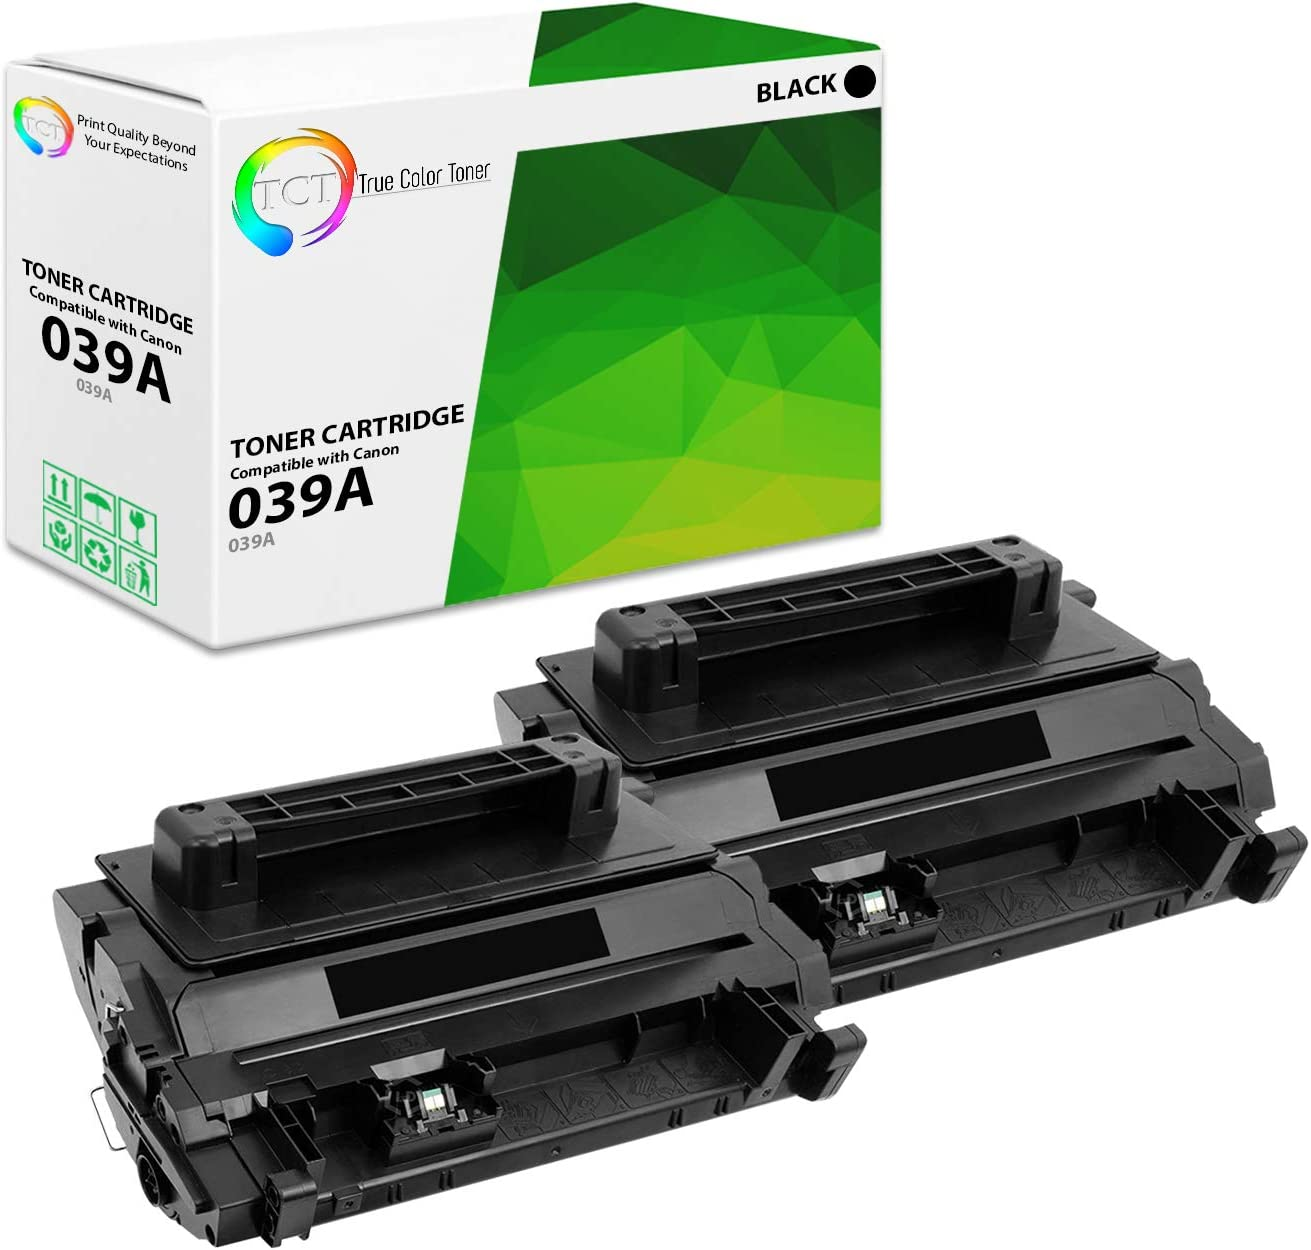 11,000 Pages TCT Premium Compatible Toner Cartridge Replacement for Canon 039 Black Works with Canon ImageClass LBP351dn LBP352dn Printers 4 Pack